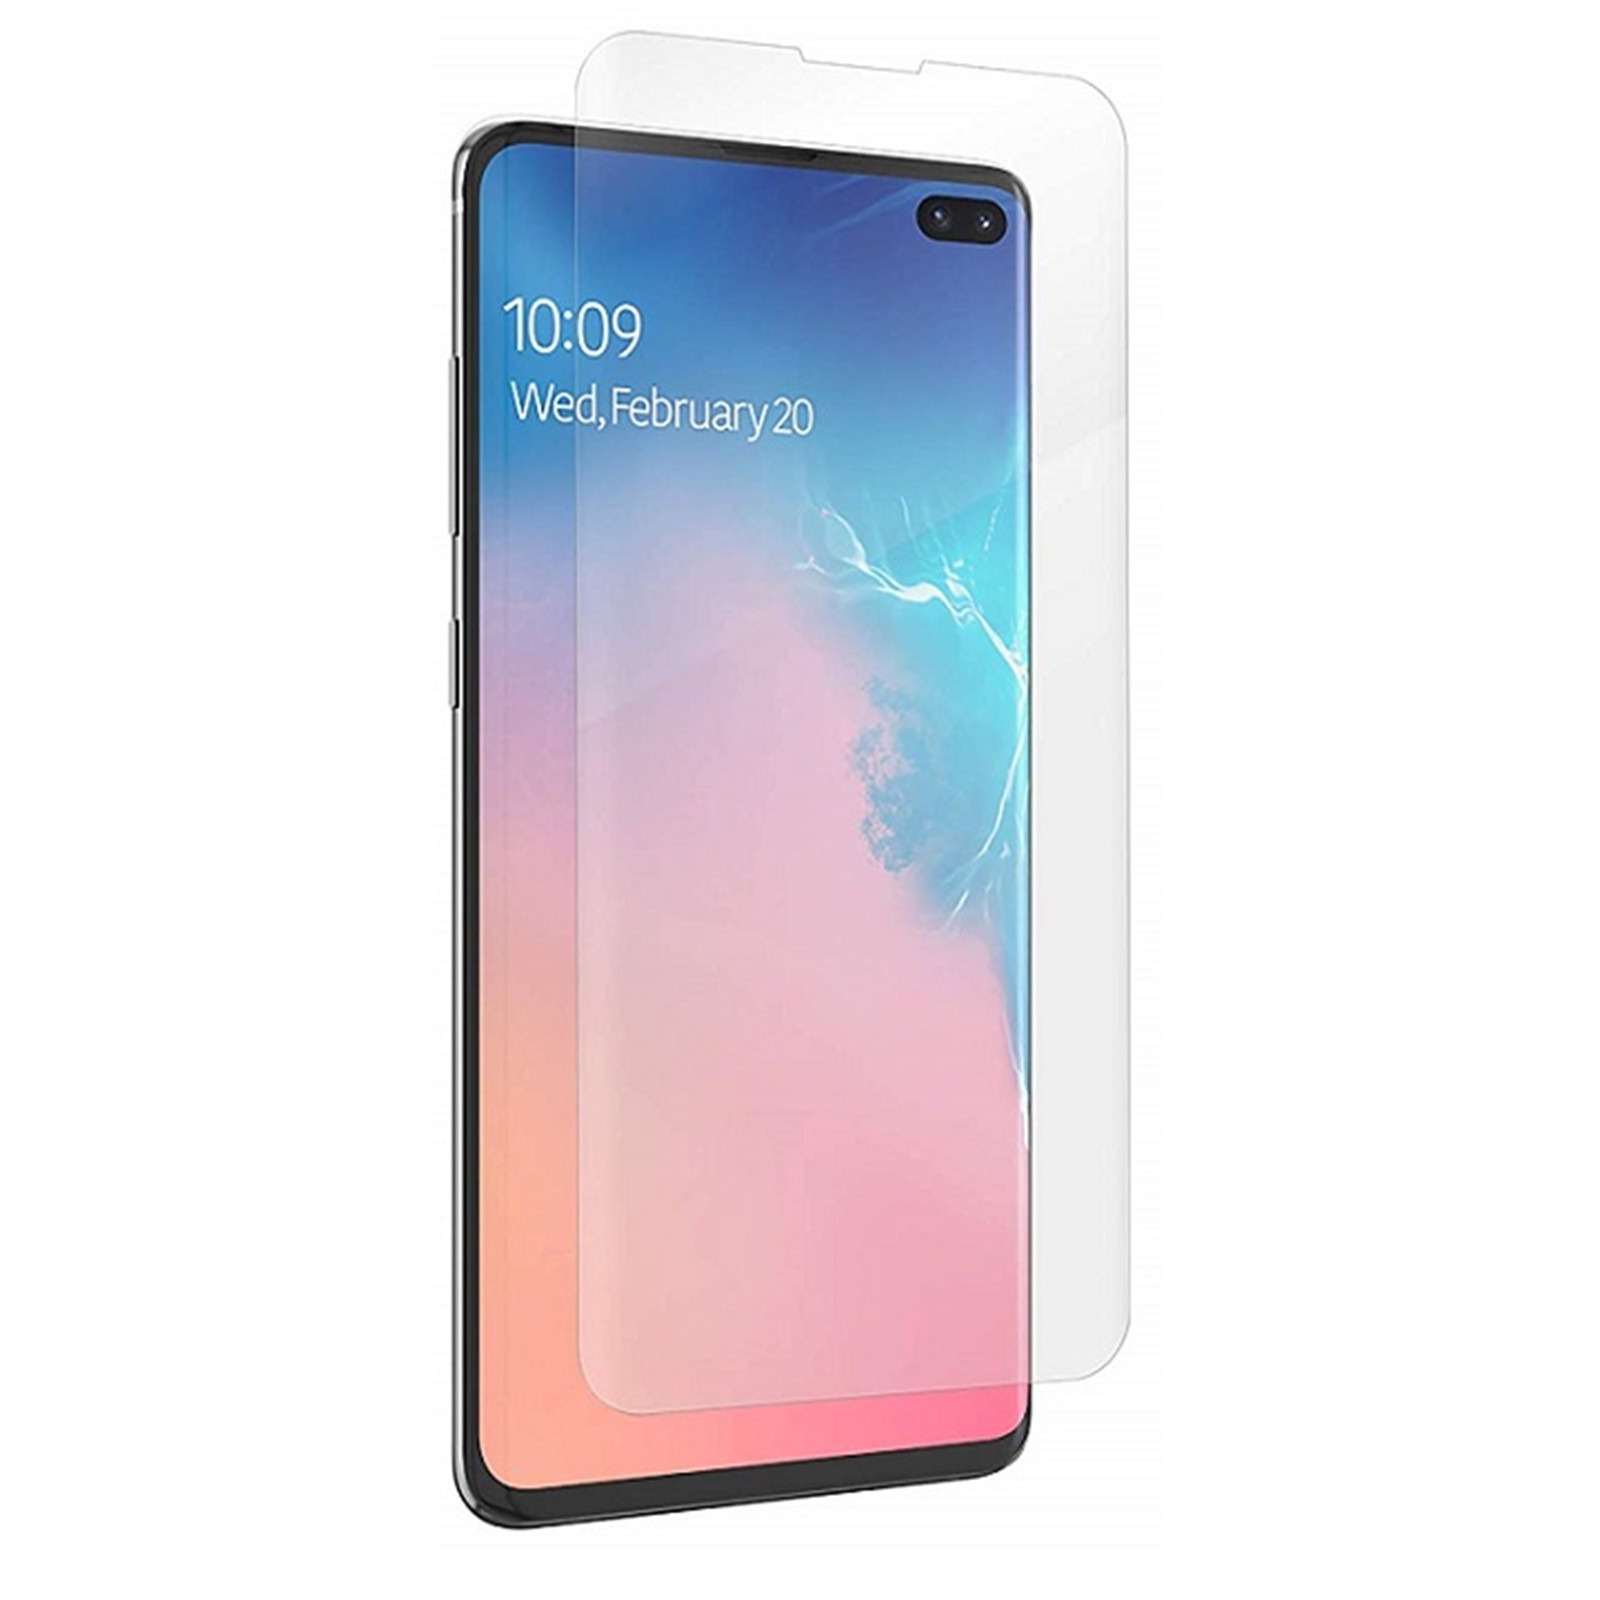 Zagg Invisible Shiled Ultra Clear Screen Protector - Fullface Μεμβράνη Προστασίας Οθόνης Samsung Galaxy S10 Plus - Transparent (200202664)